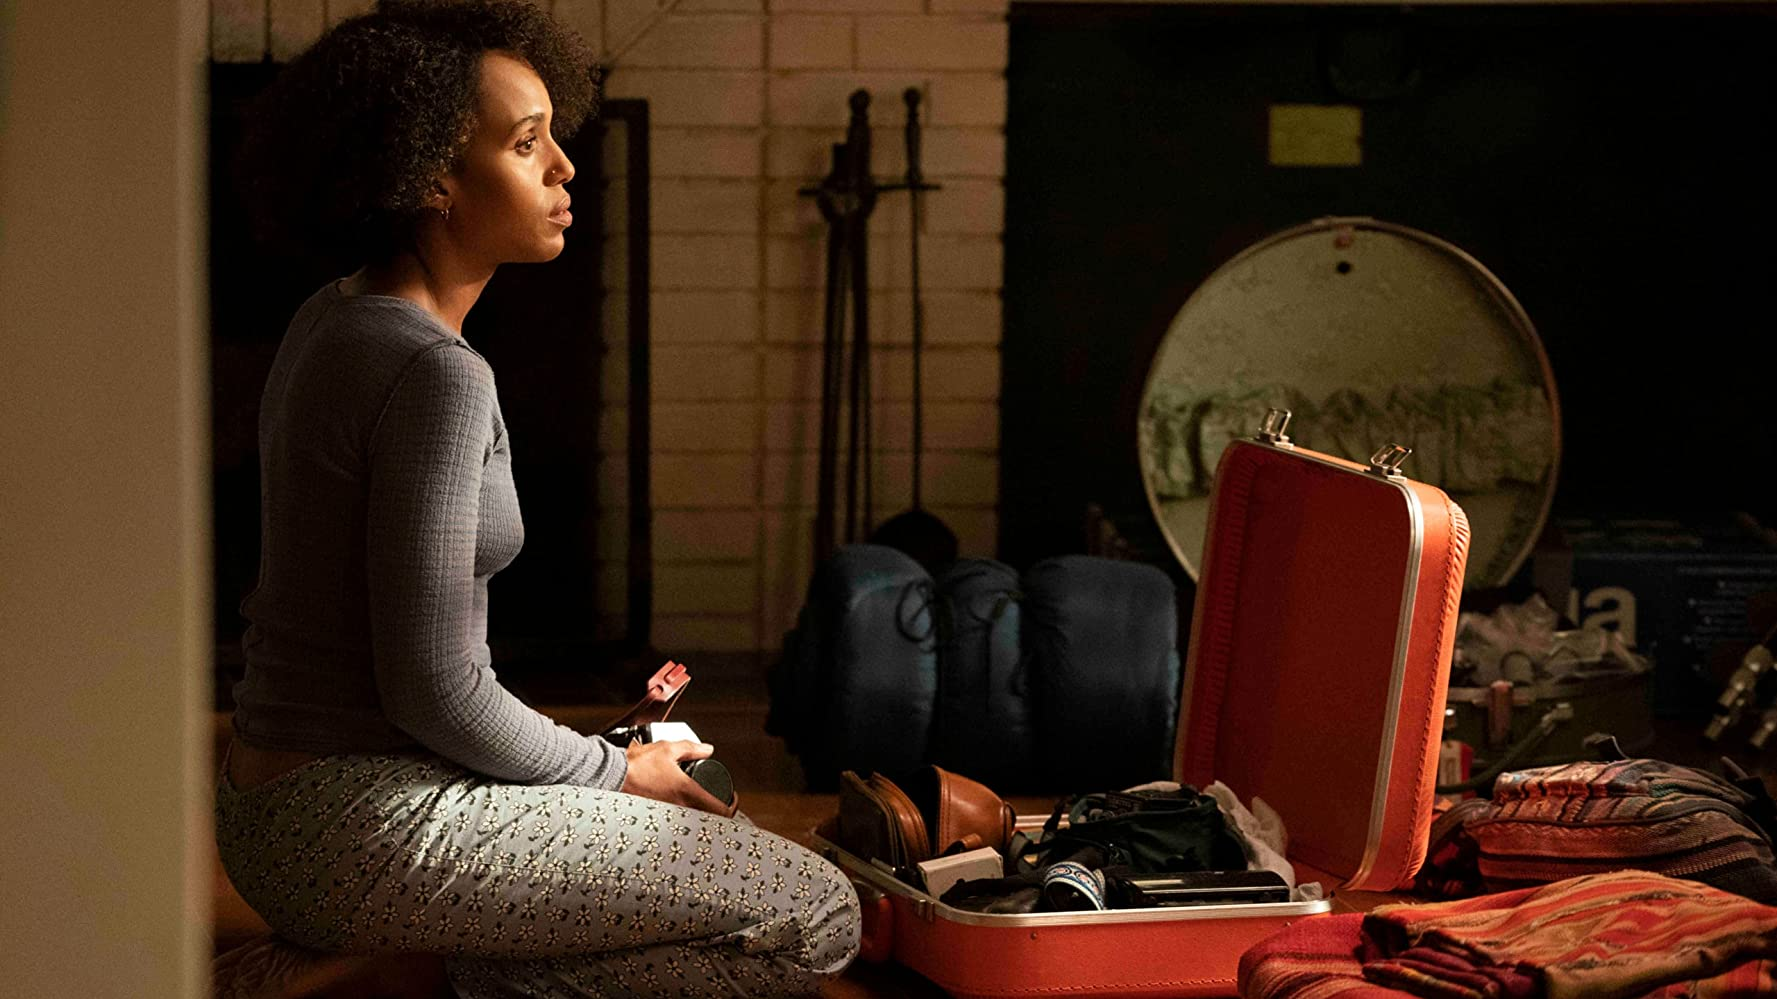 Kerry Washington in The Spark (2020)